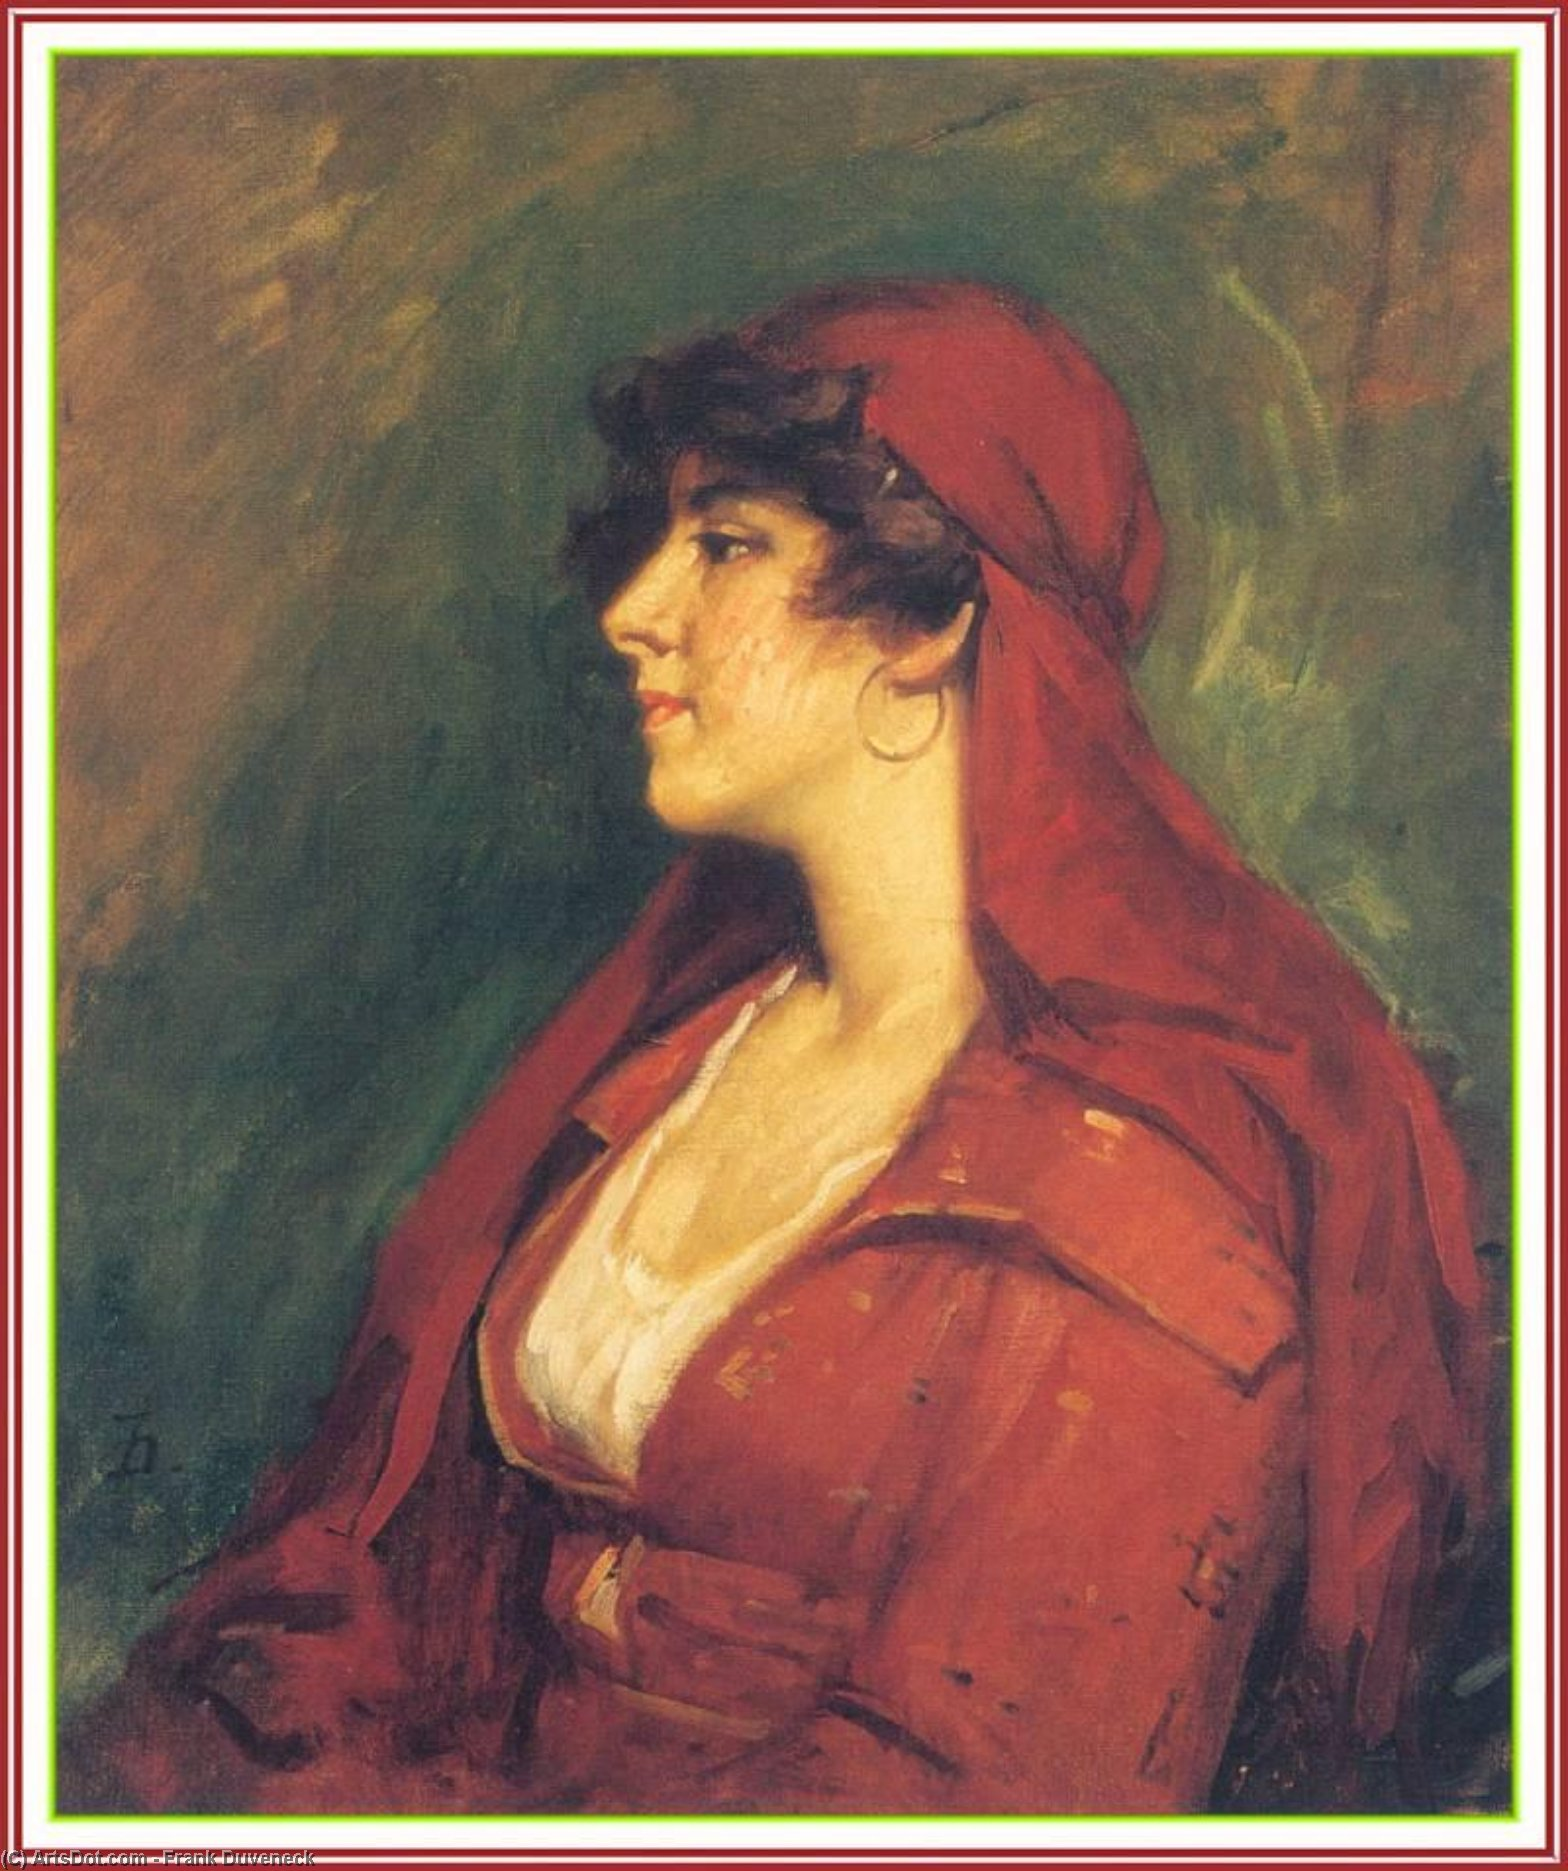 Lady in Red by Frank Duveneck (1848-1919, United States)